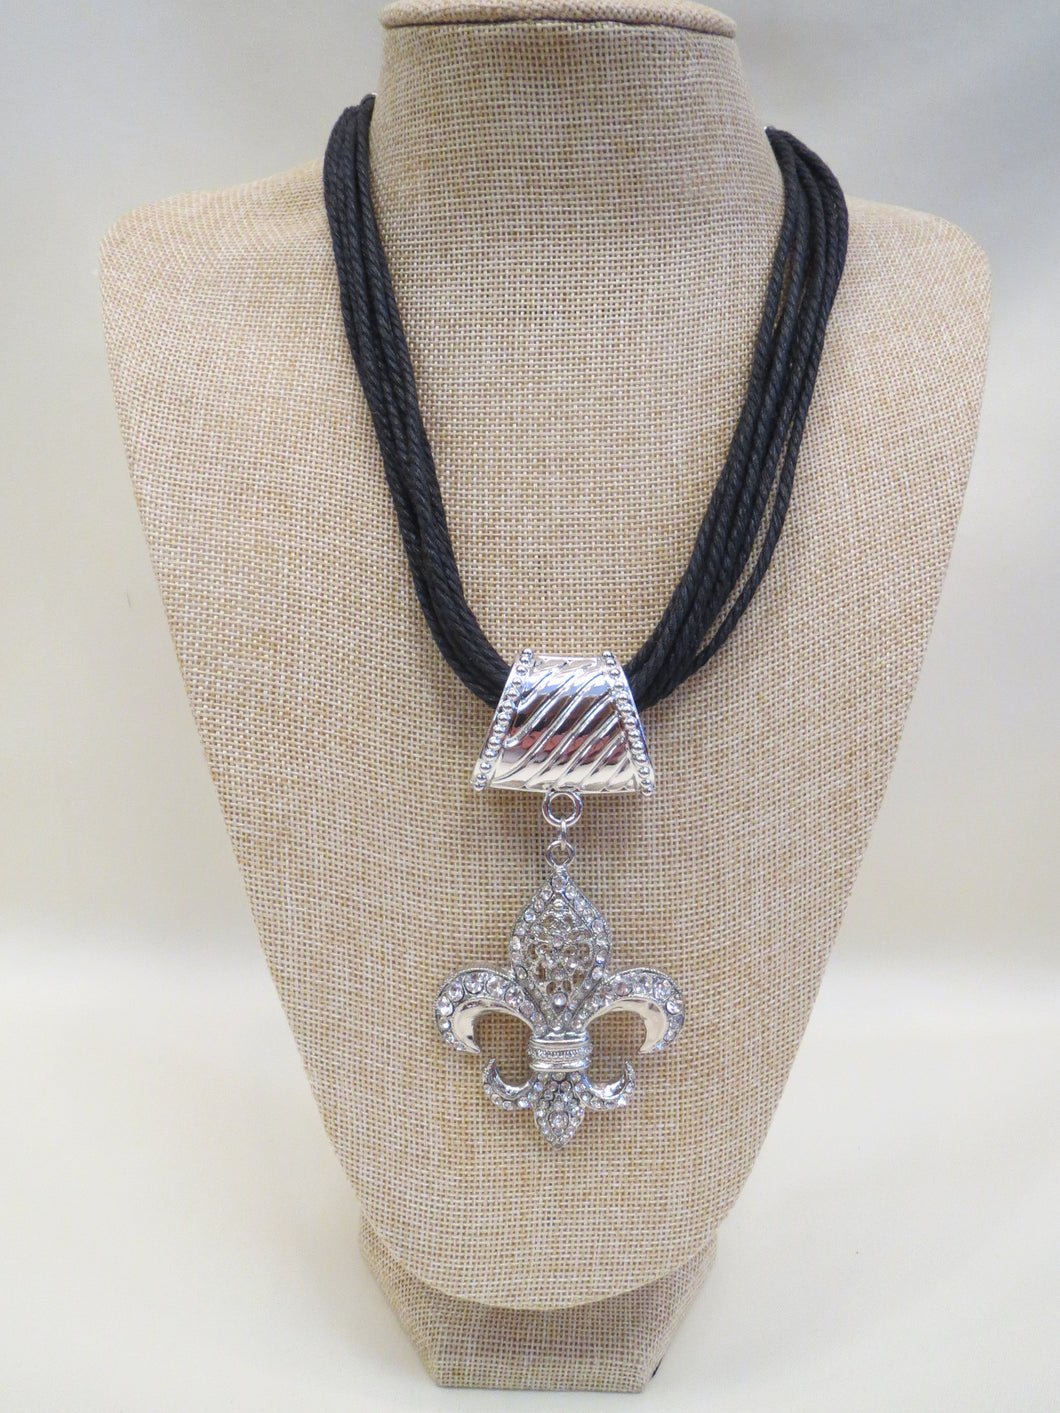 ADO Leather Cord Necklace Fleur De Lis | All Dec'd Out